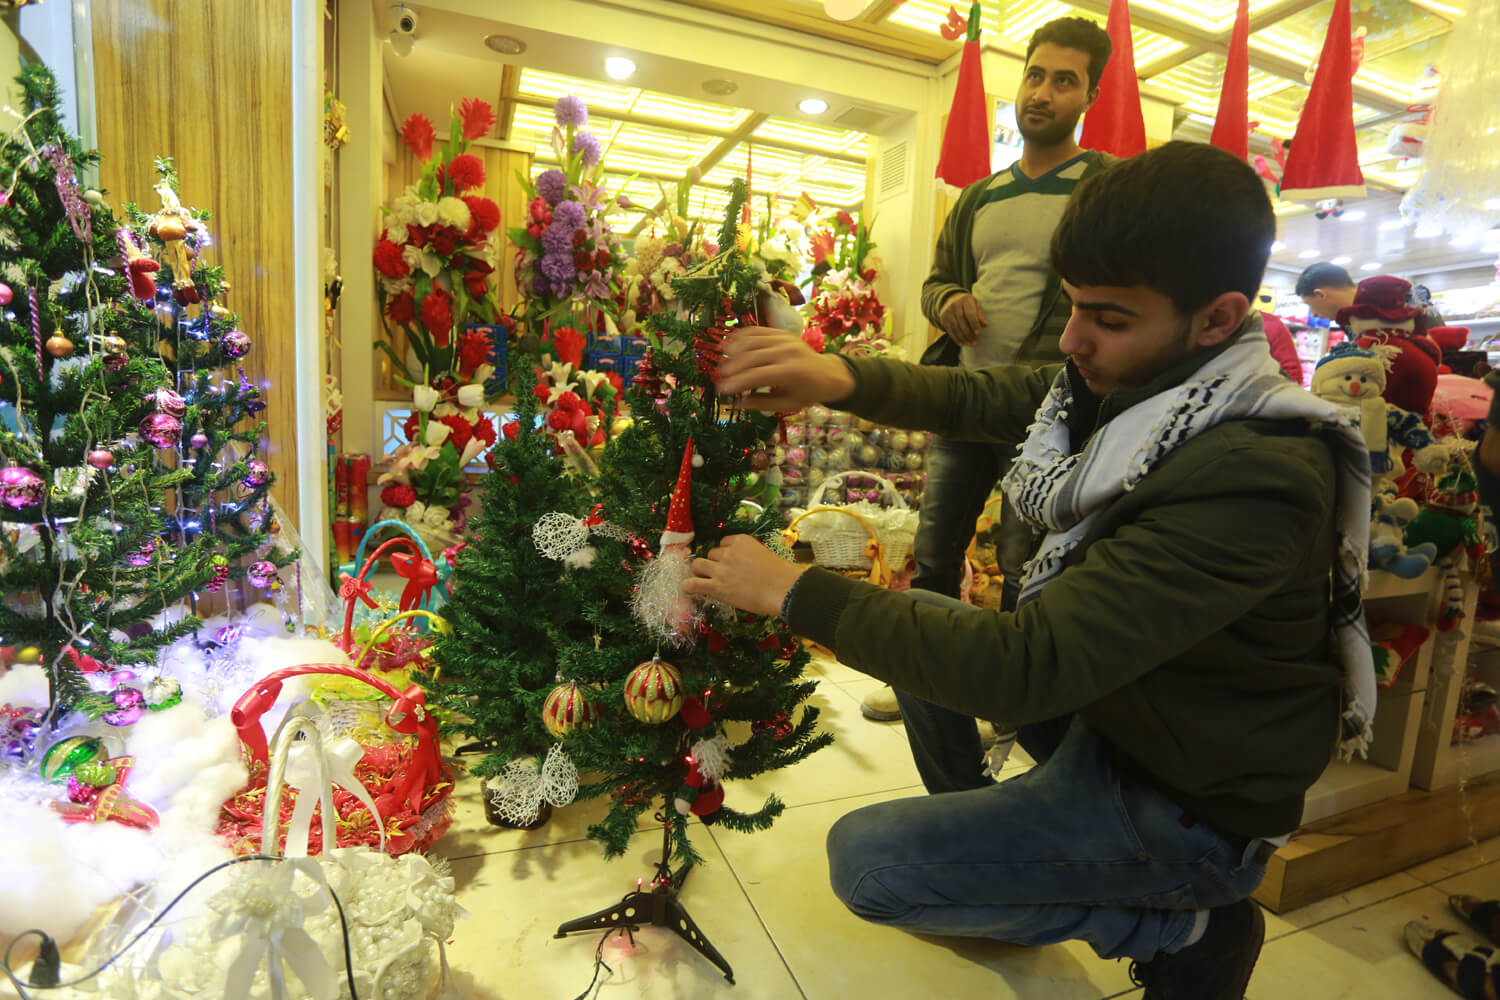 Vendor equips a holiday Christmas tree (Photo: Mohammed Asad)